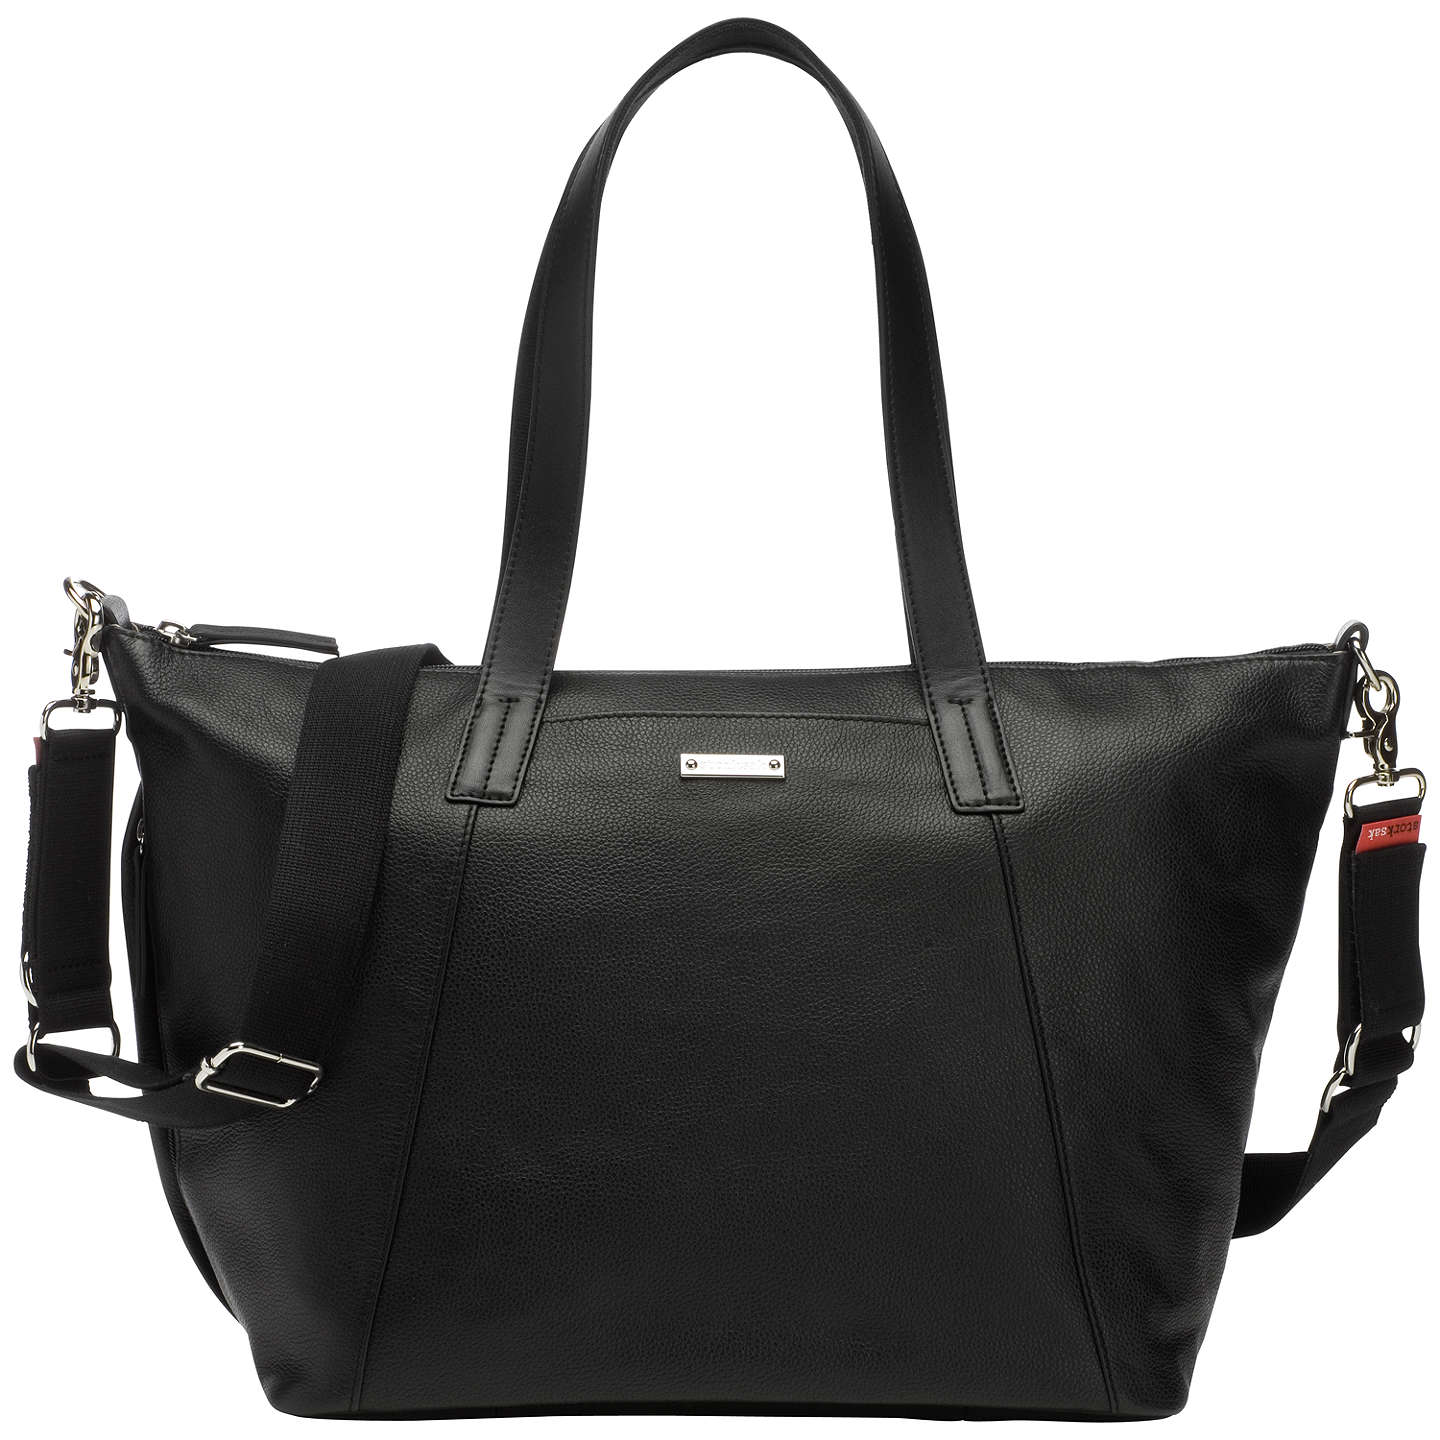 BuyStorksak Noa Leather Changing Bag, Black Online at johnlewis.com